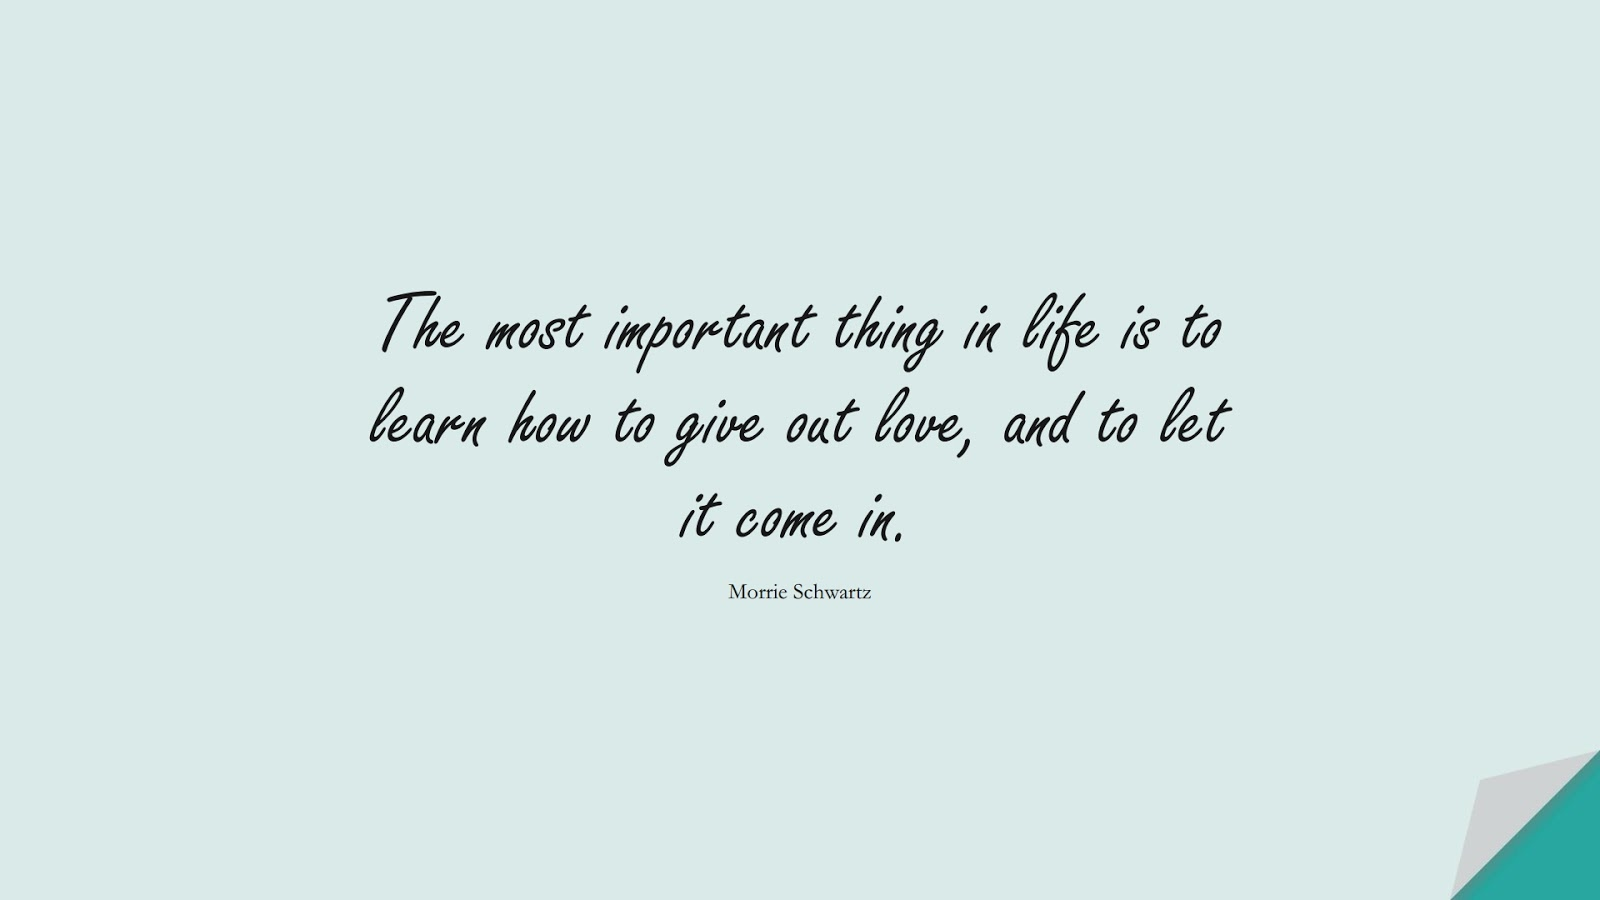 The most important thing in life is to learn how to give out love, and to let it come in. (Morrie Schwartz);  #LifeQuotes